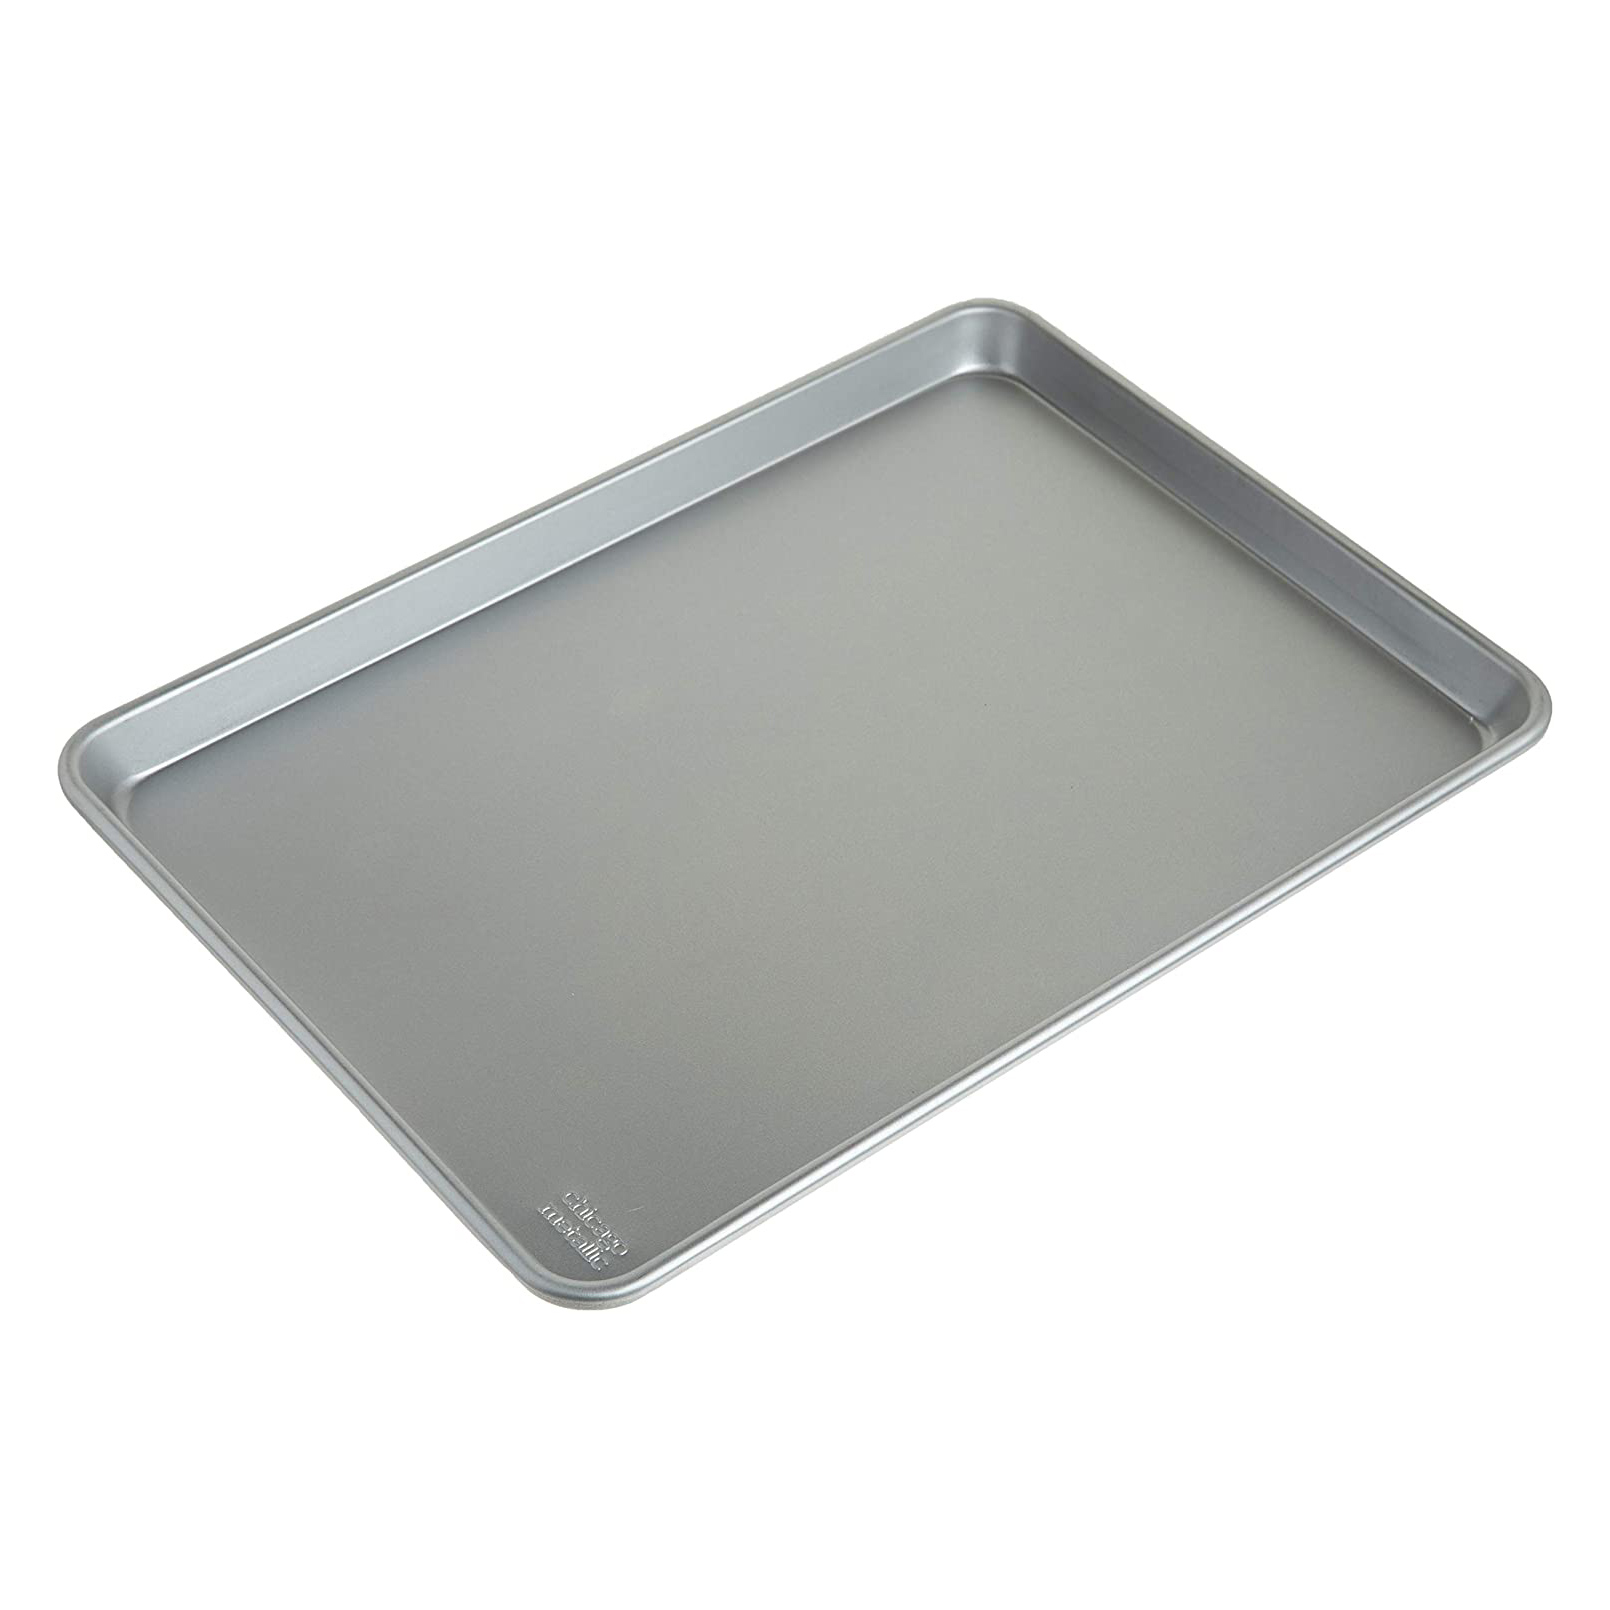 aluminum jelly roll pan on white background